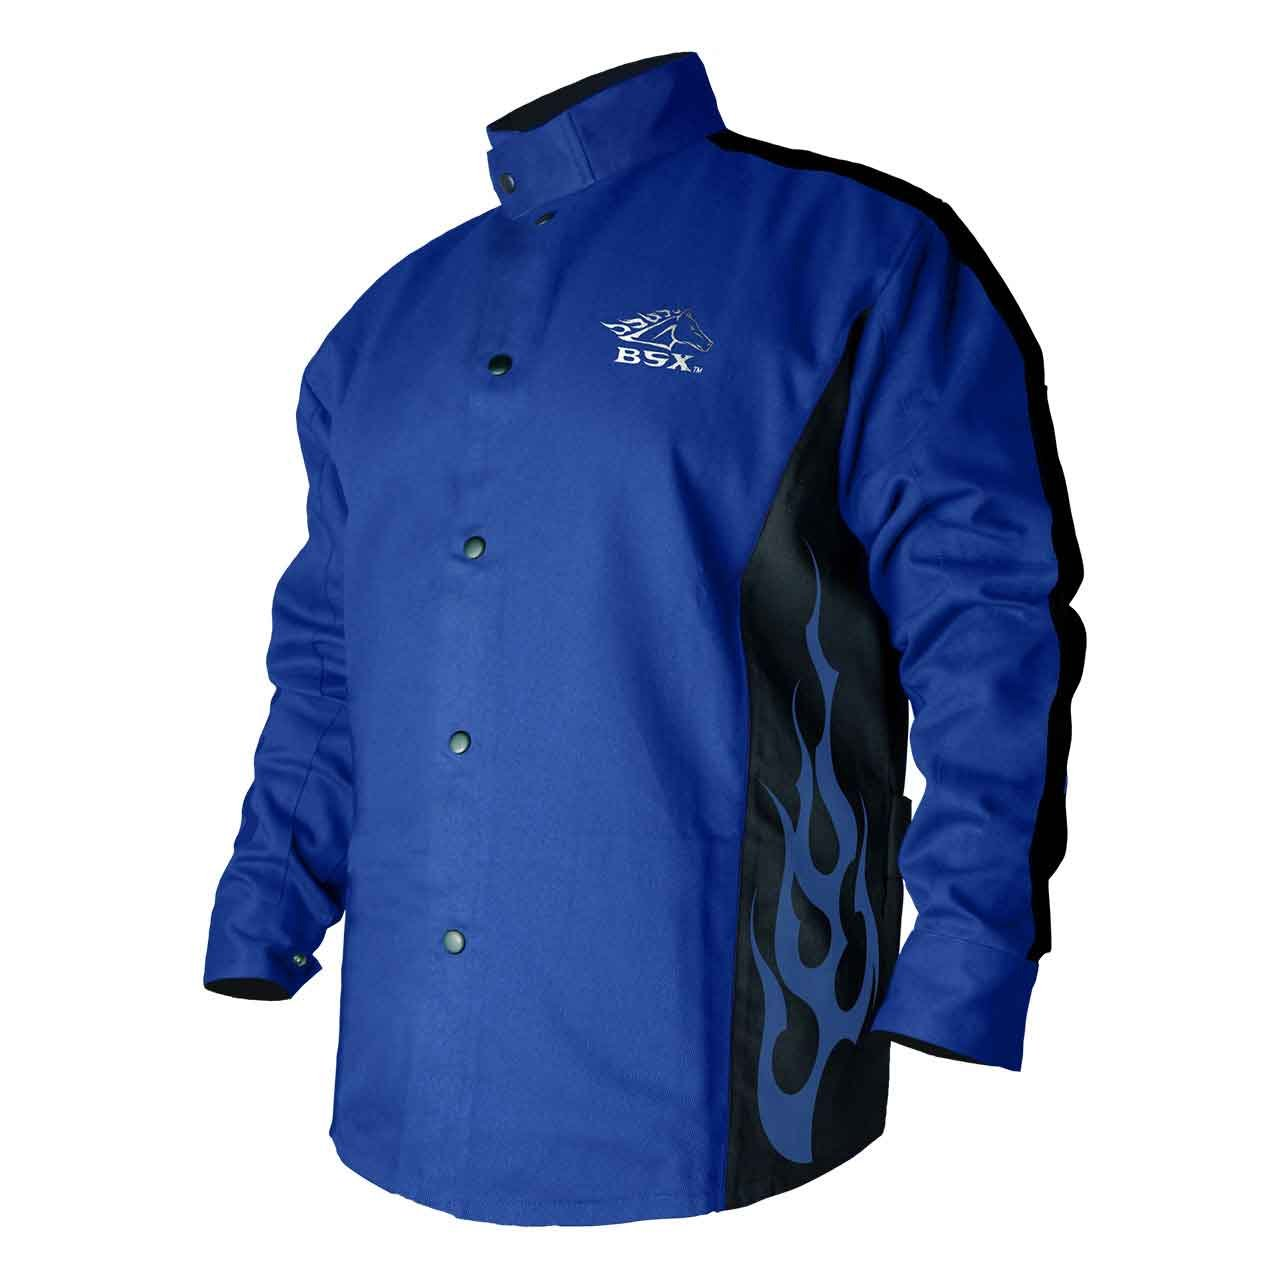 Bsx Bxrb9C 3Xl Blue With Blue Flames Welding Jacket